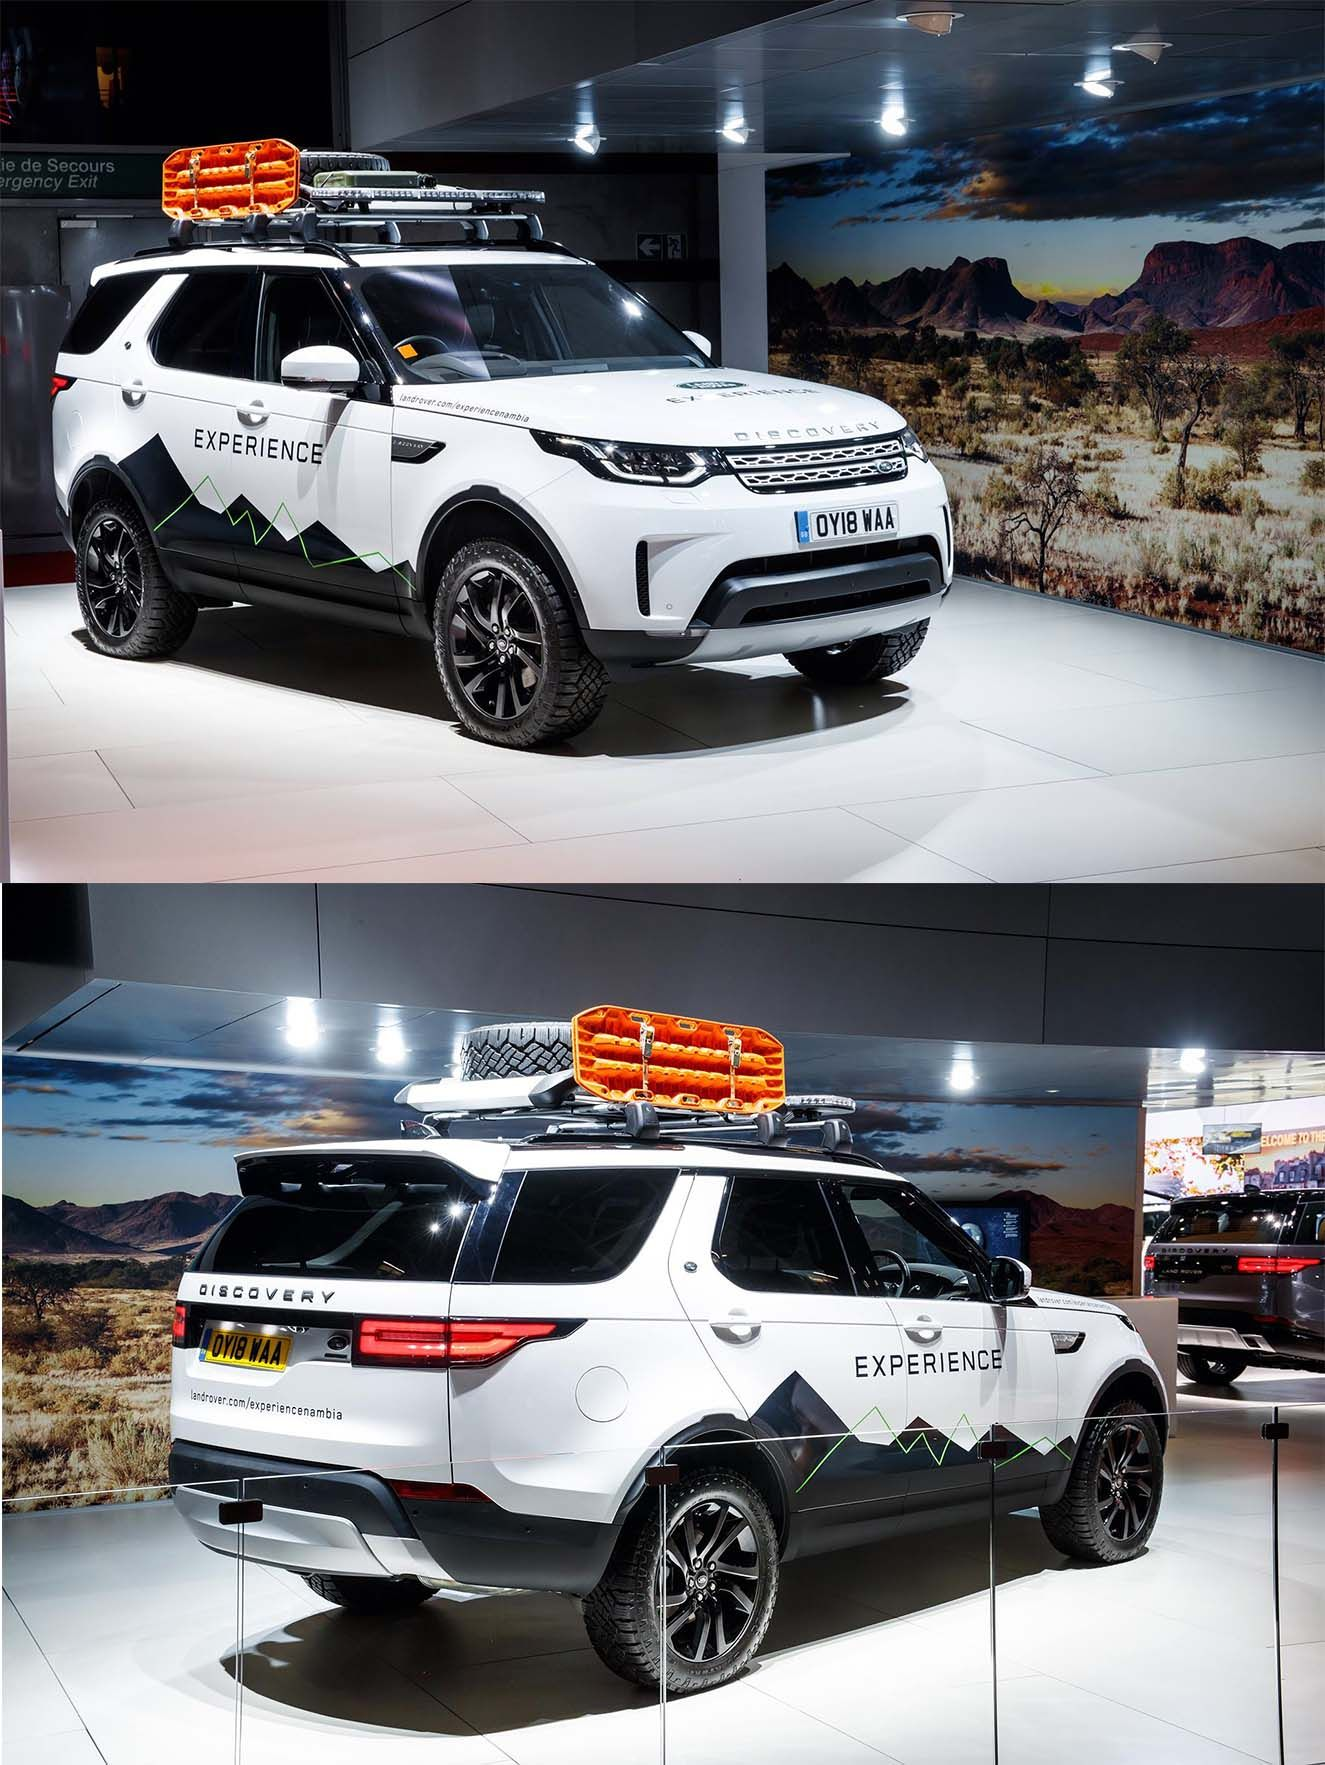 Pin By Joe Hunt On Cool Rides With Images Land Rover Discovery 5 Land Rover Discovery Land Rover Discovery 2